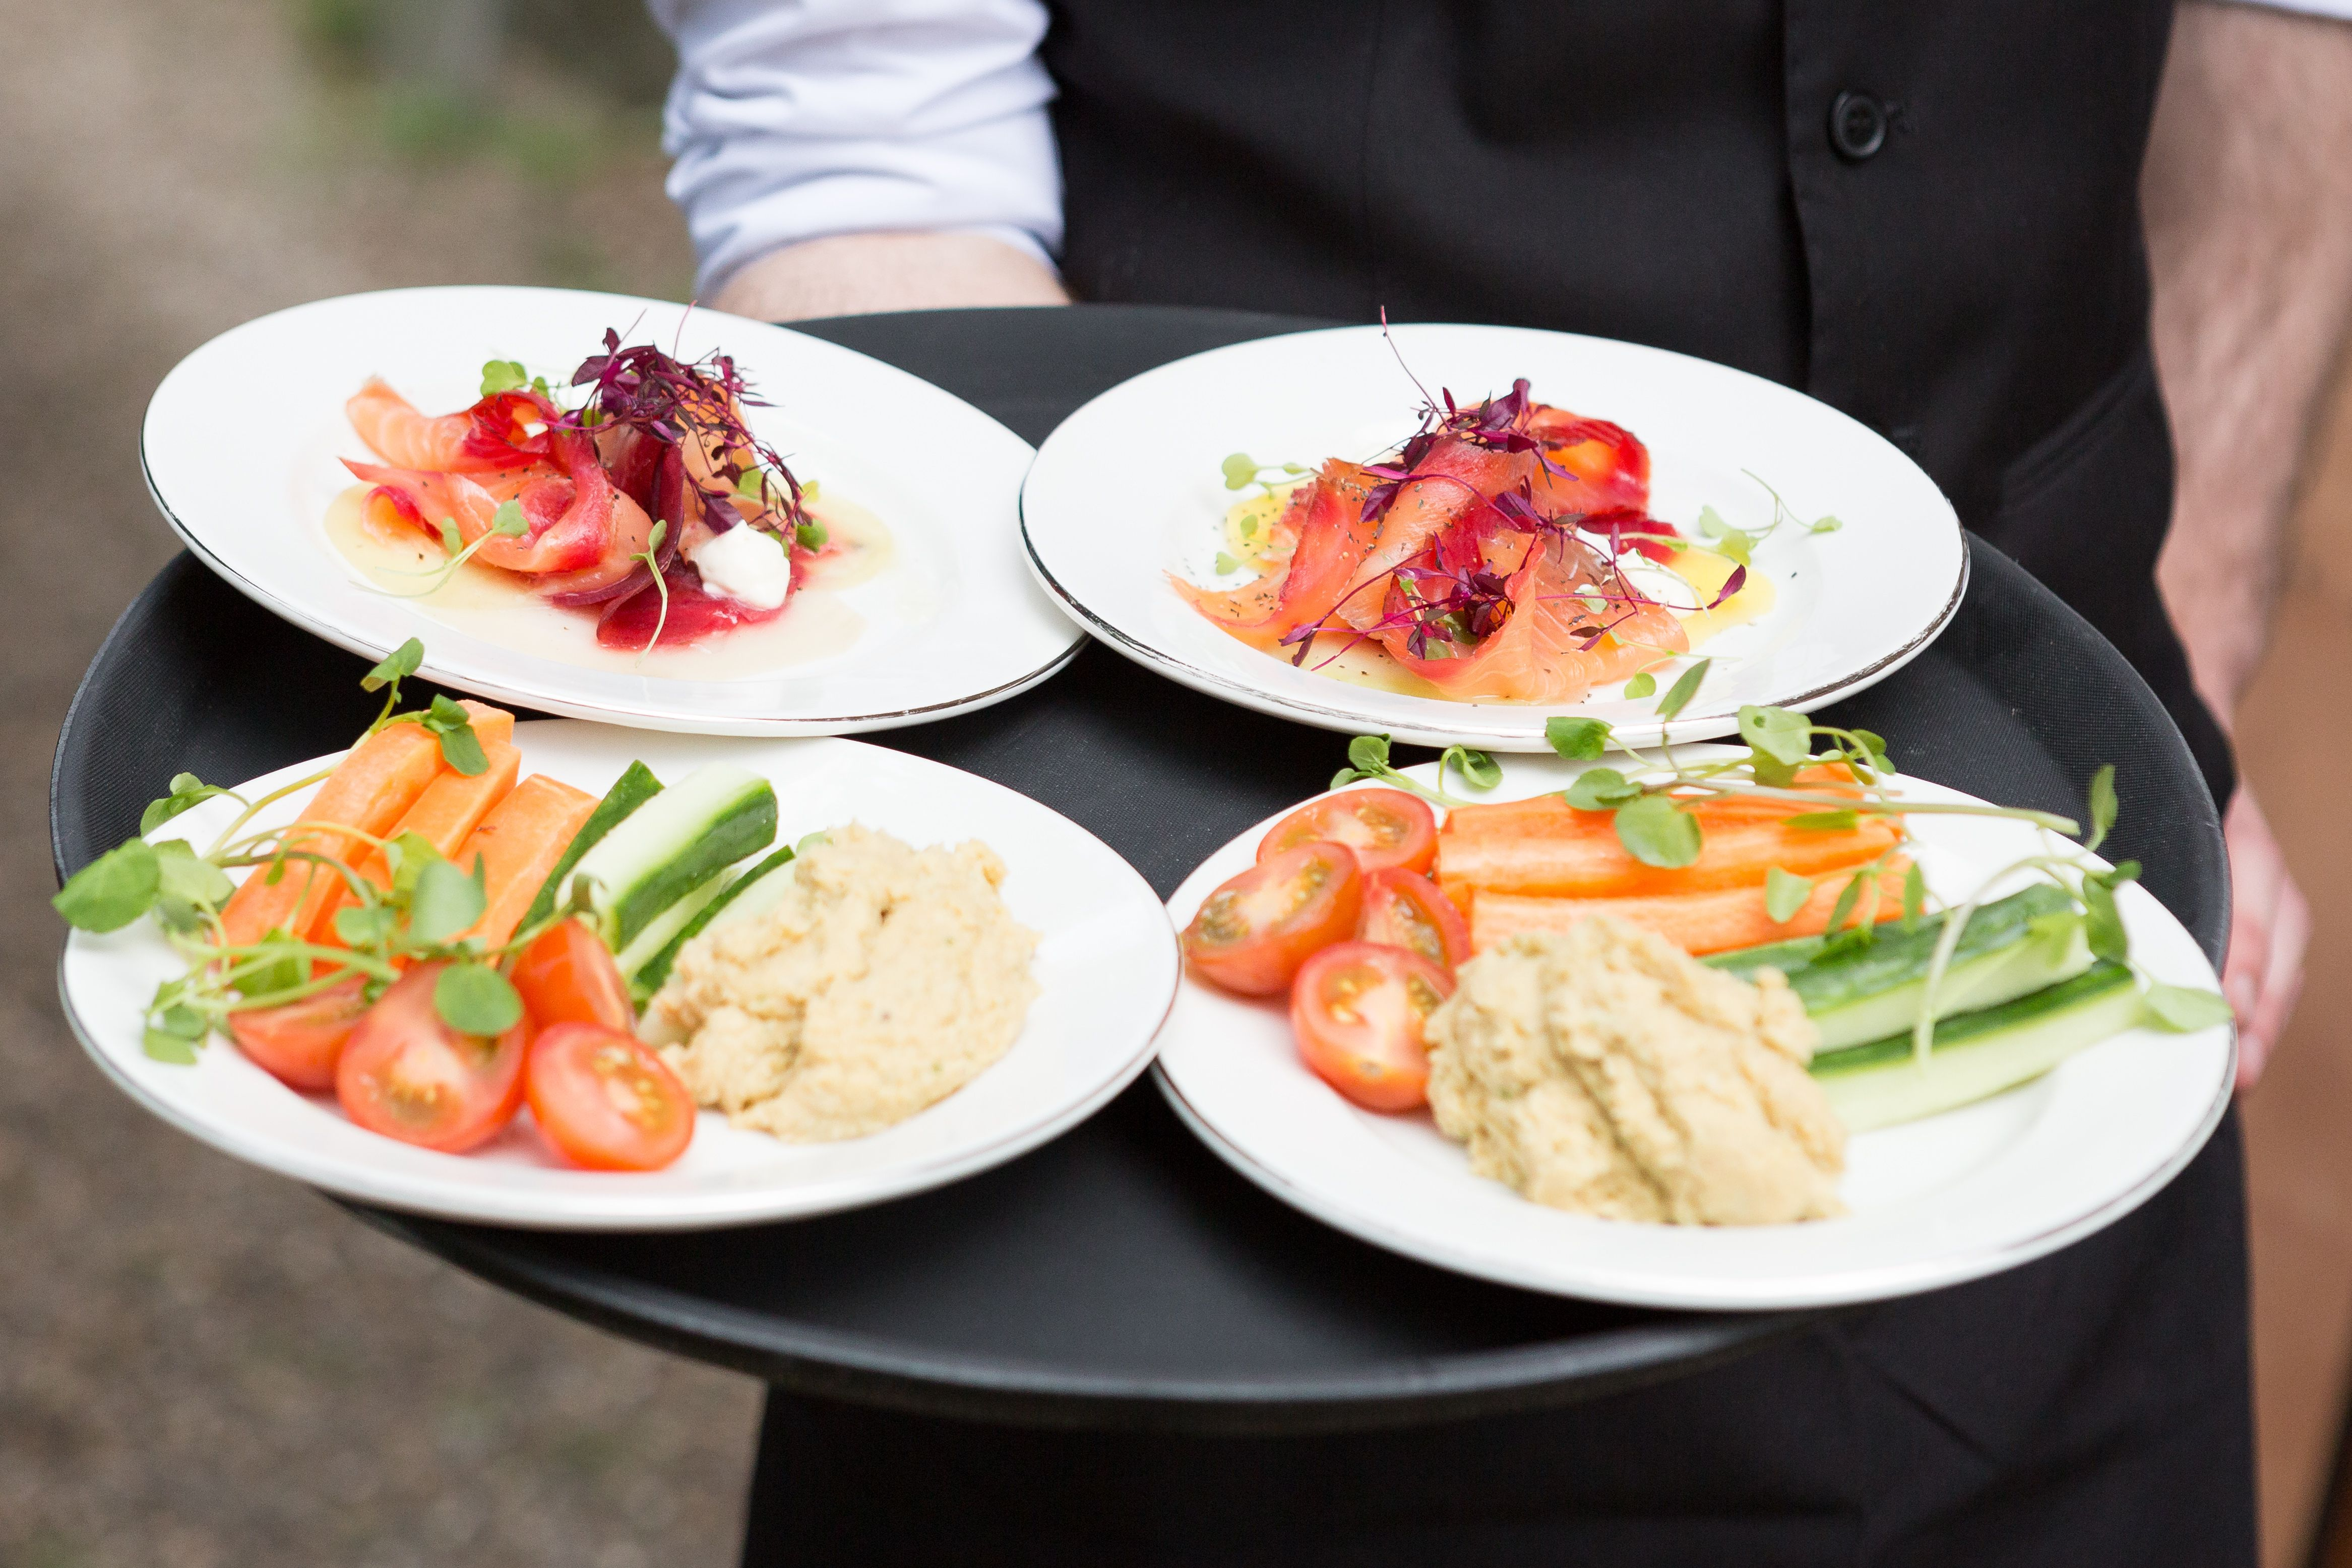 Scottish Smoked Salmon Starters And Children Humous Dip Plates